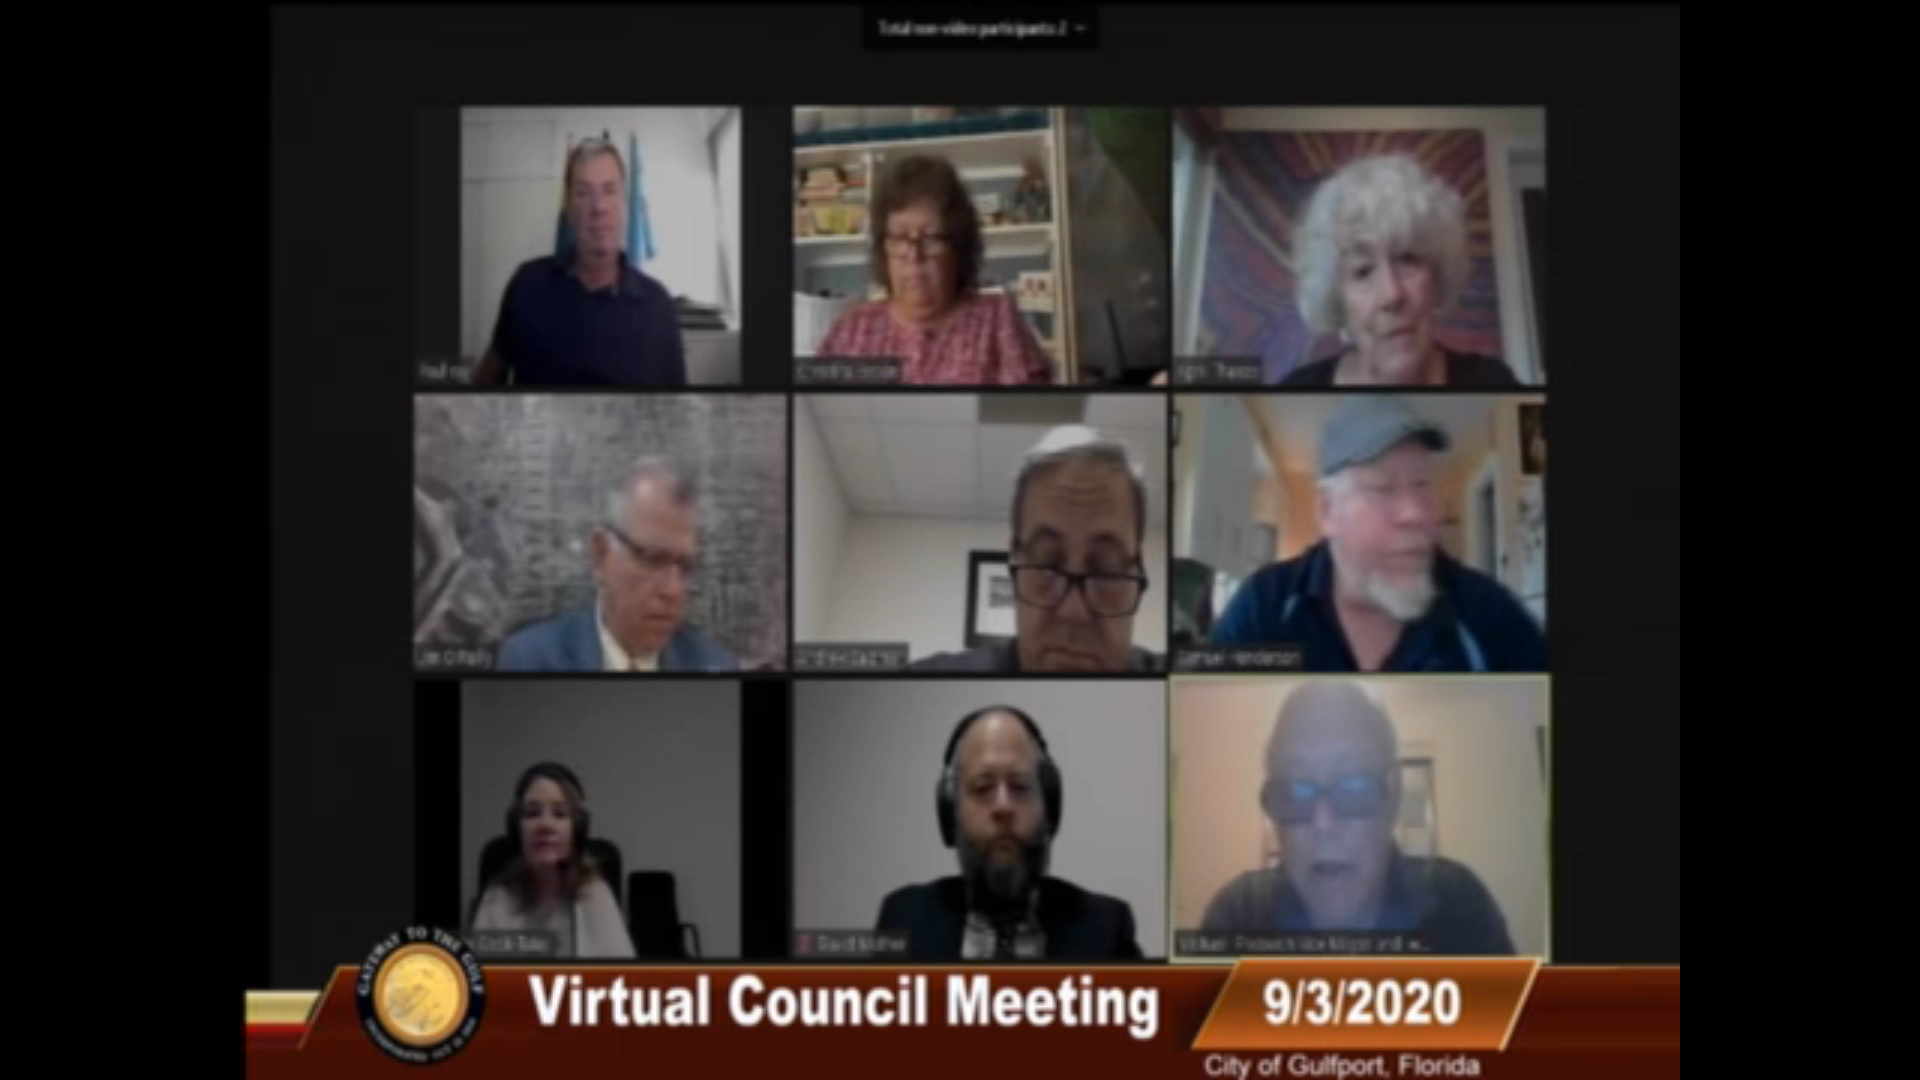 Screenshot of a Gulfport Florida City Council Meeting with council members Via Zoom.